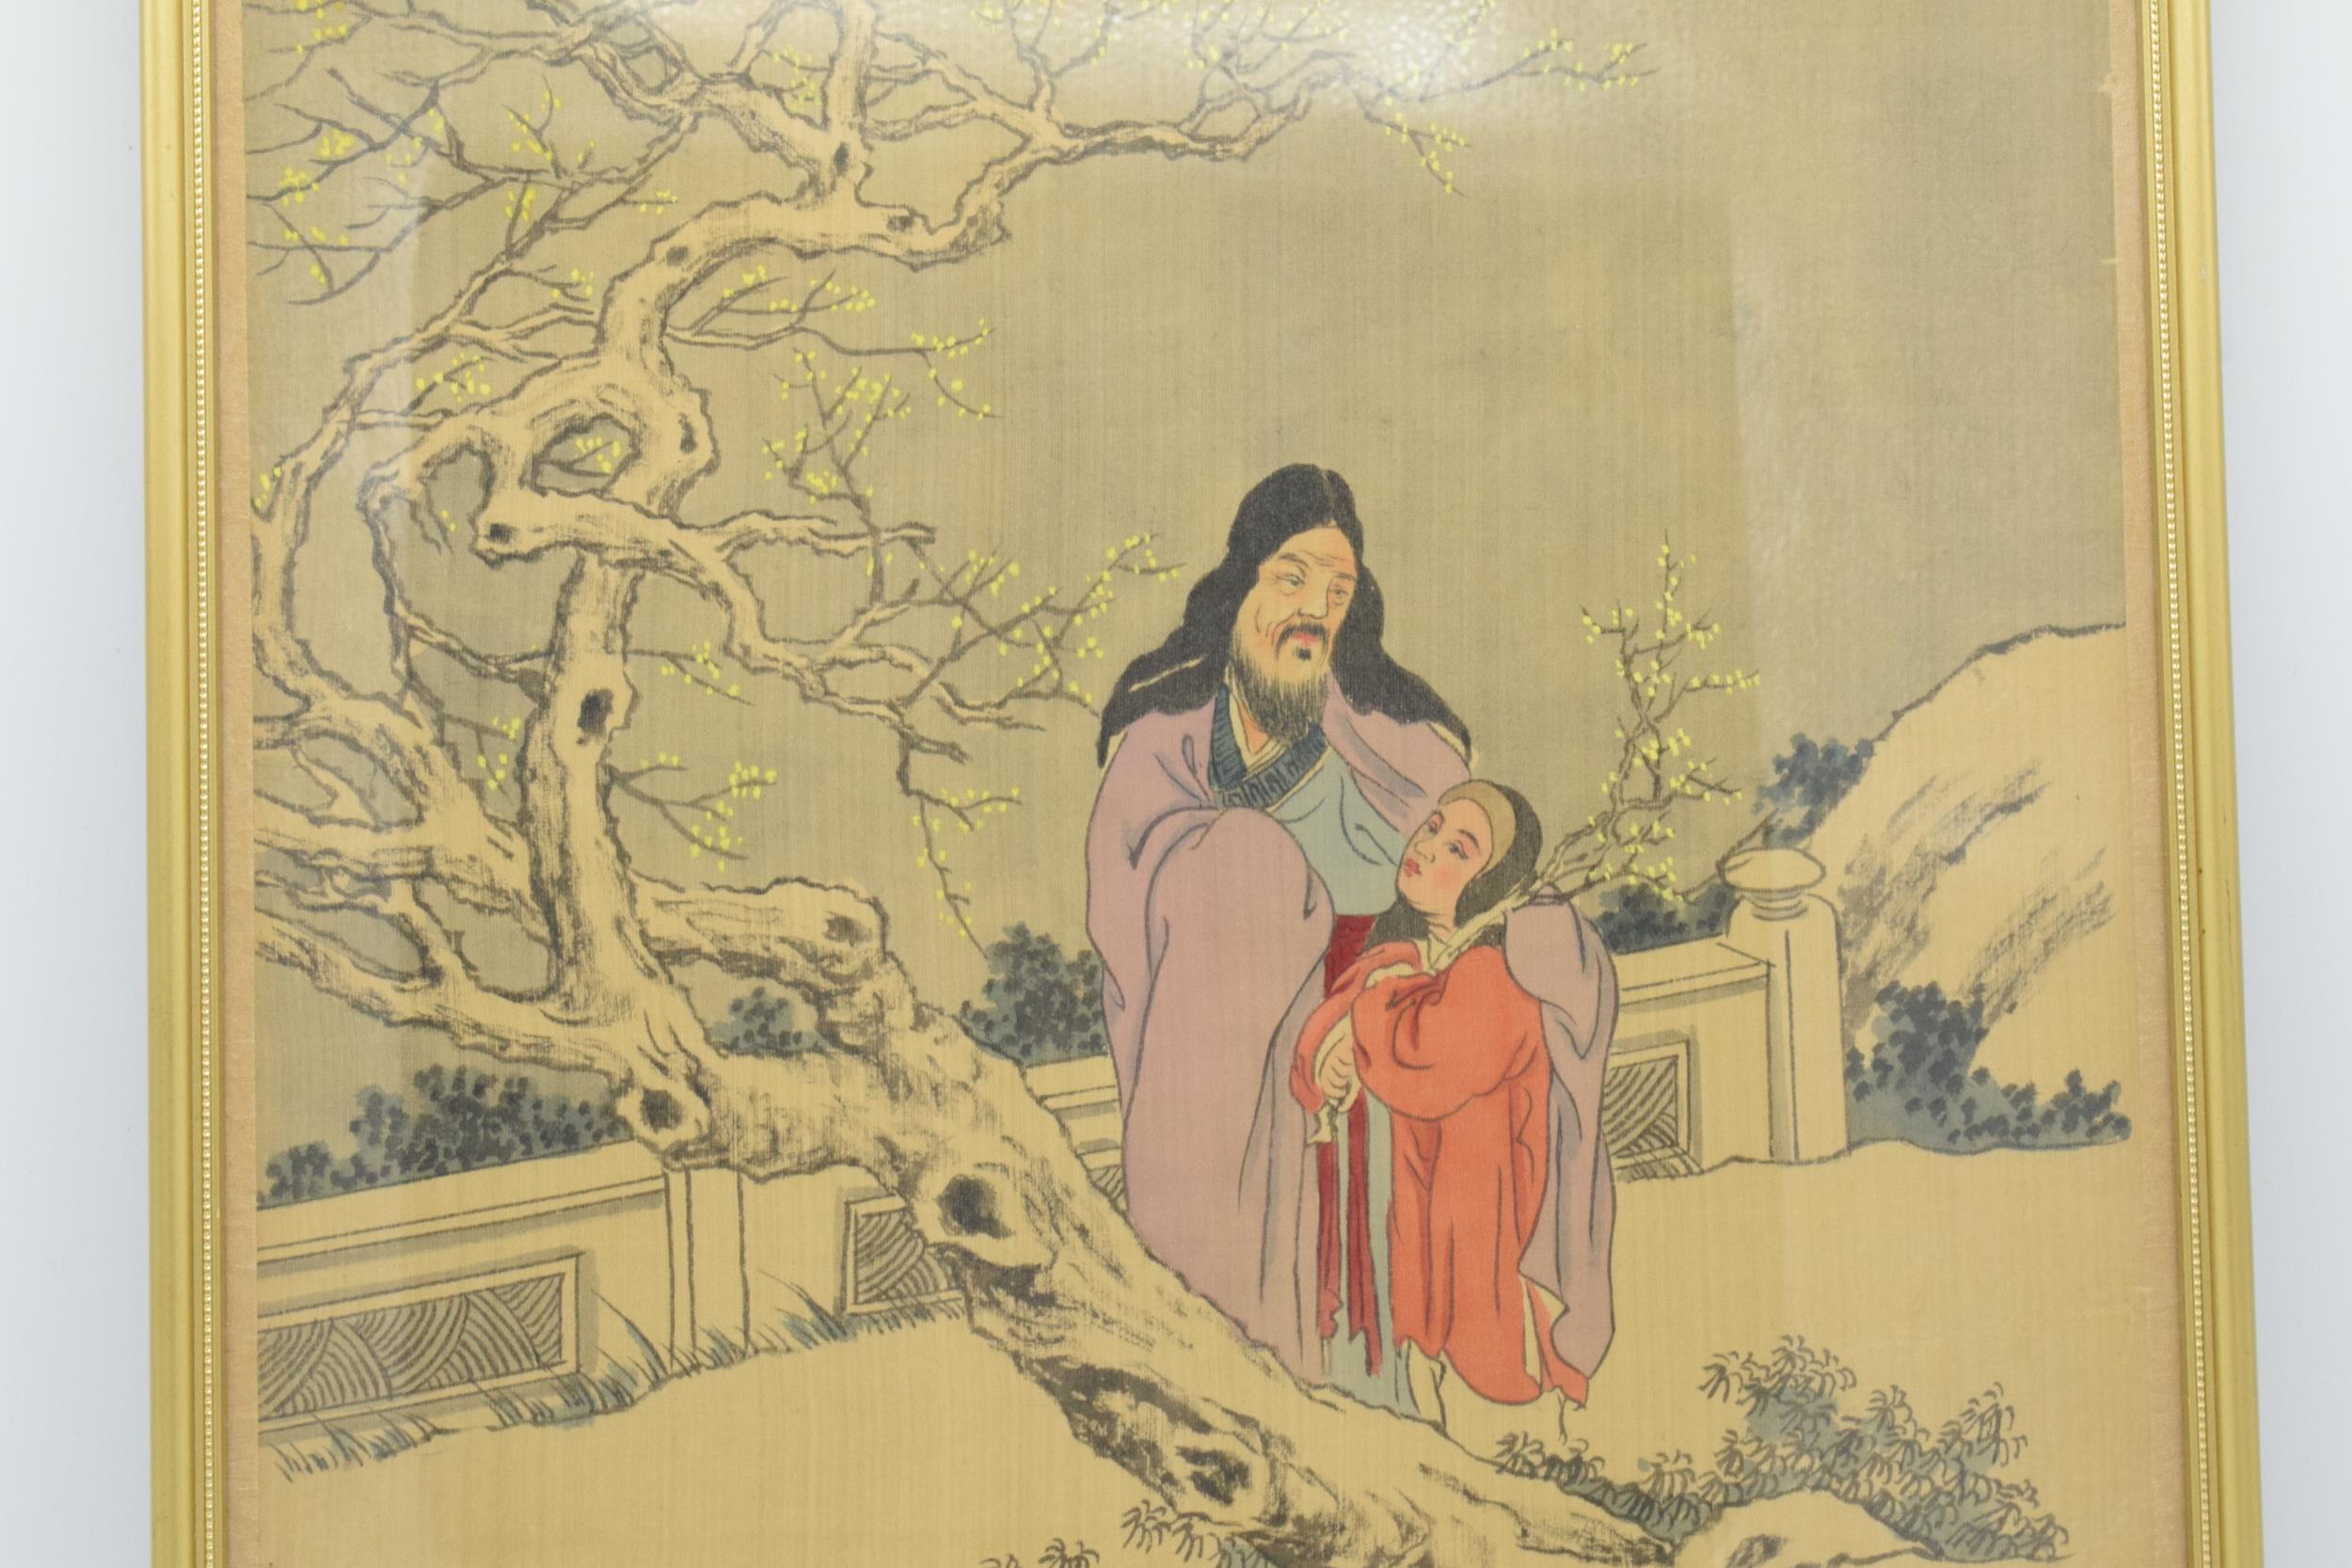 Meiji Japanese woodblock print depicting snowy mountain scene with man and young girl in front of - Image 3 of 6